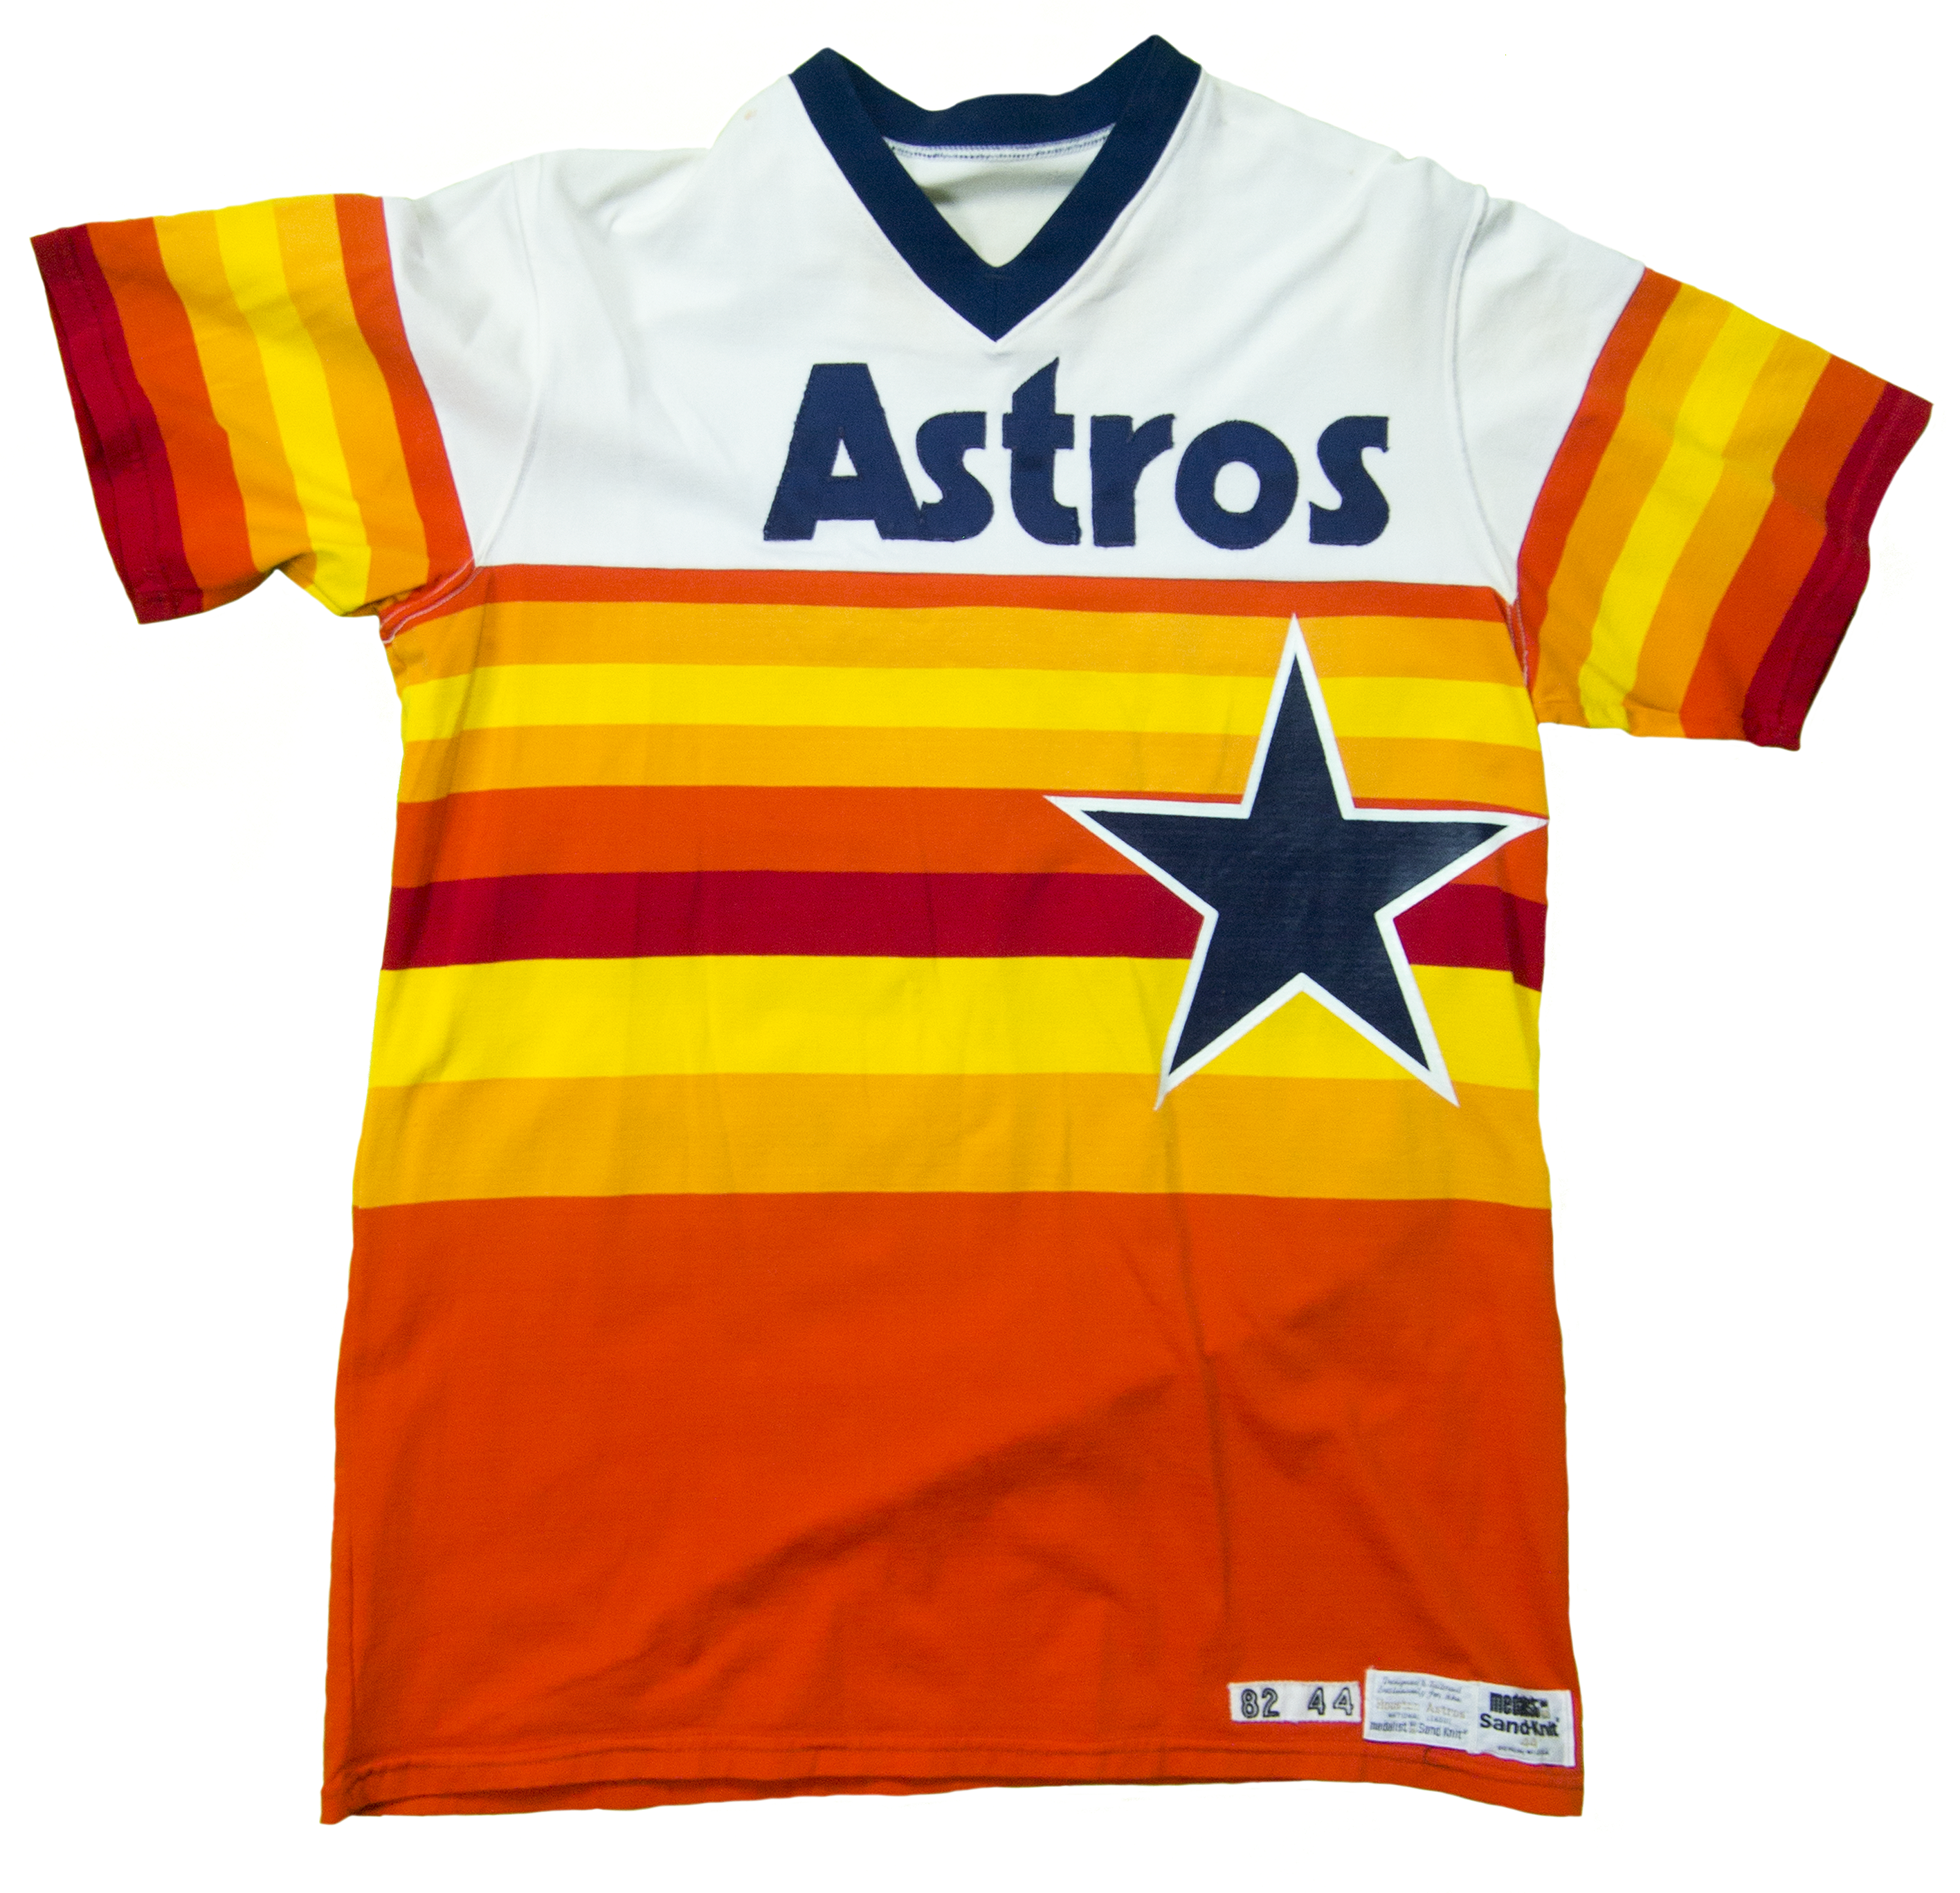 A photo of a 1982 Astros jersey. Image courtesy of Sports Publishing.